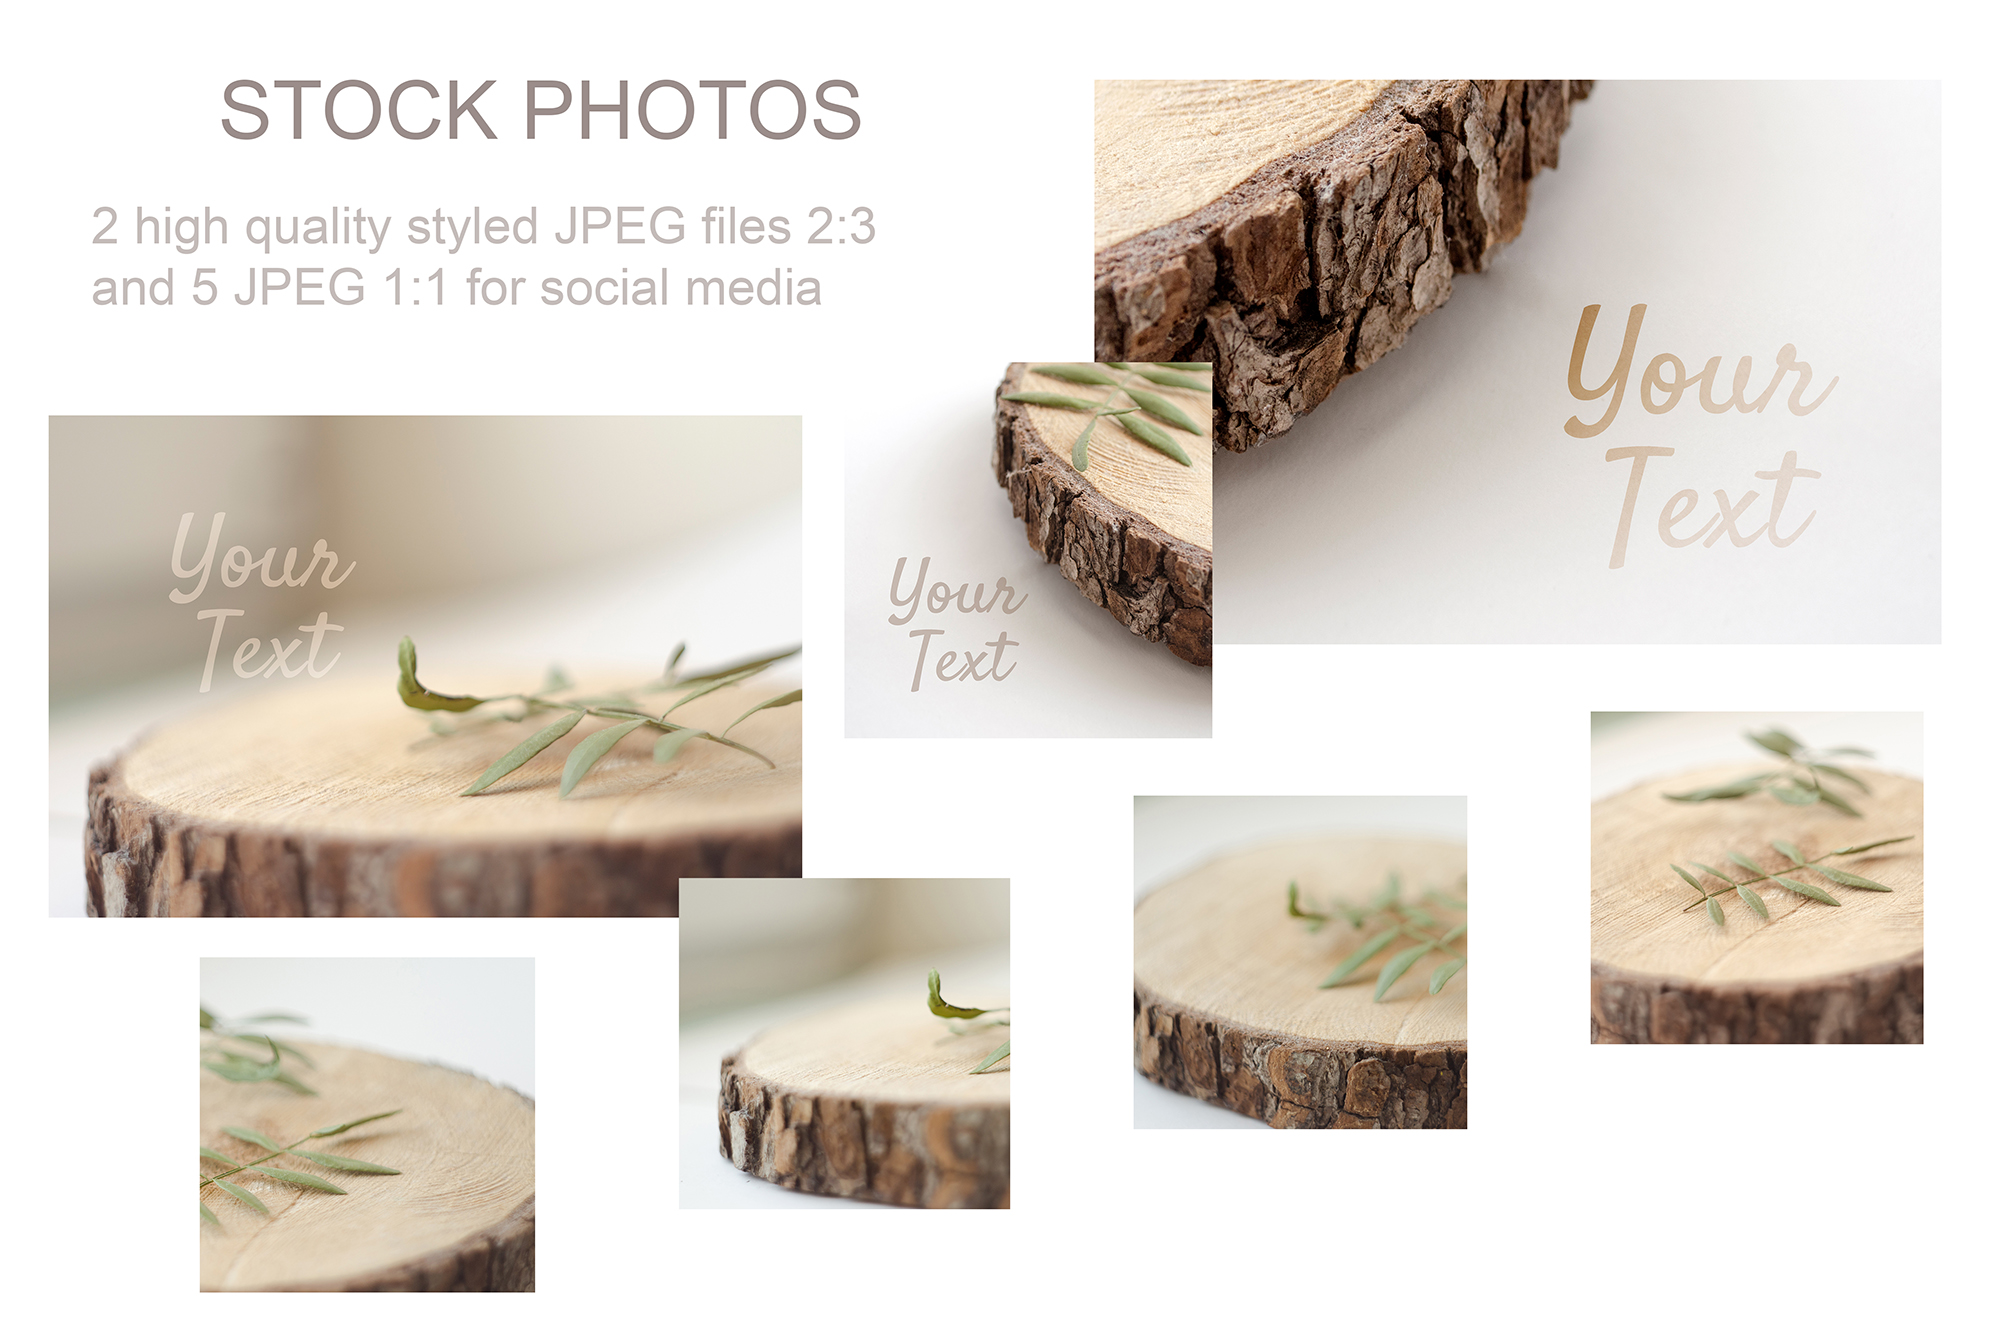 Stationery Mockup Card and Stock Photos example image 6